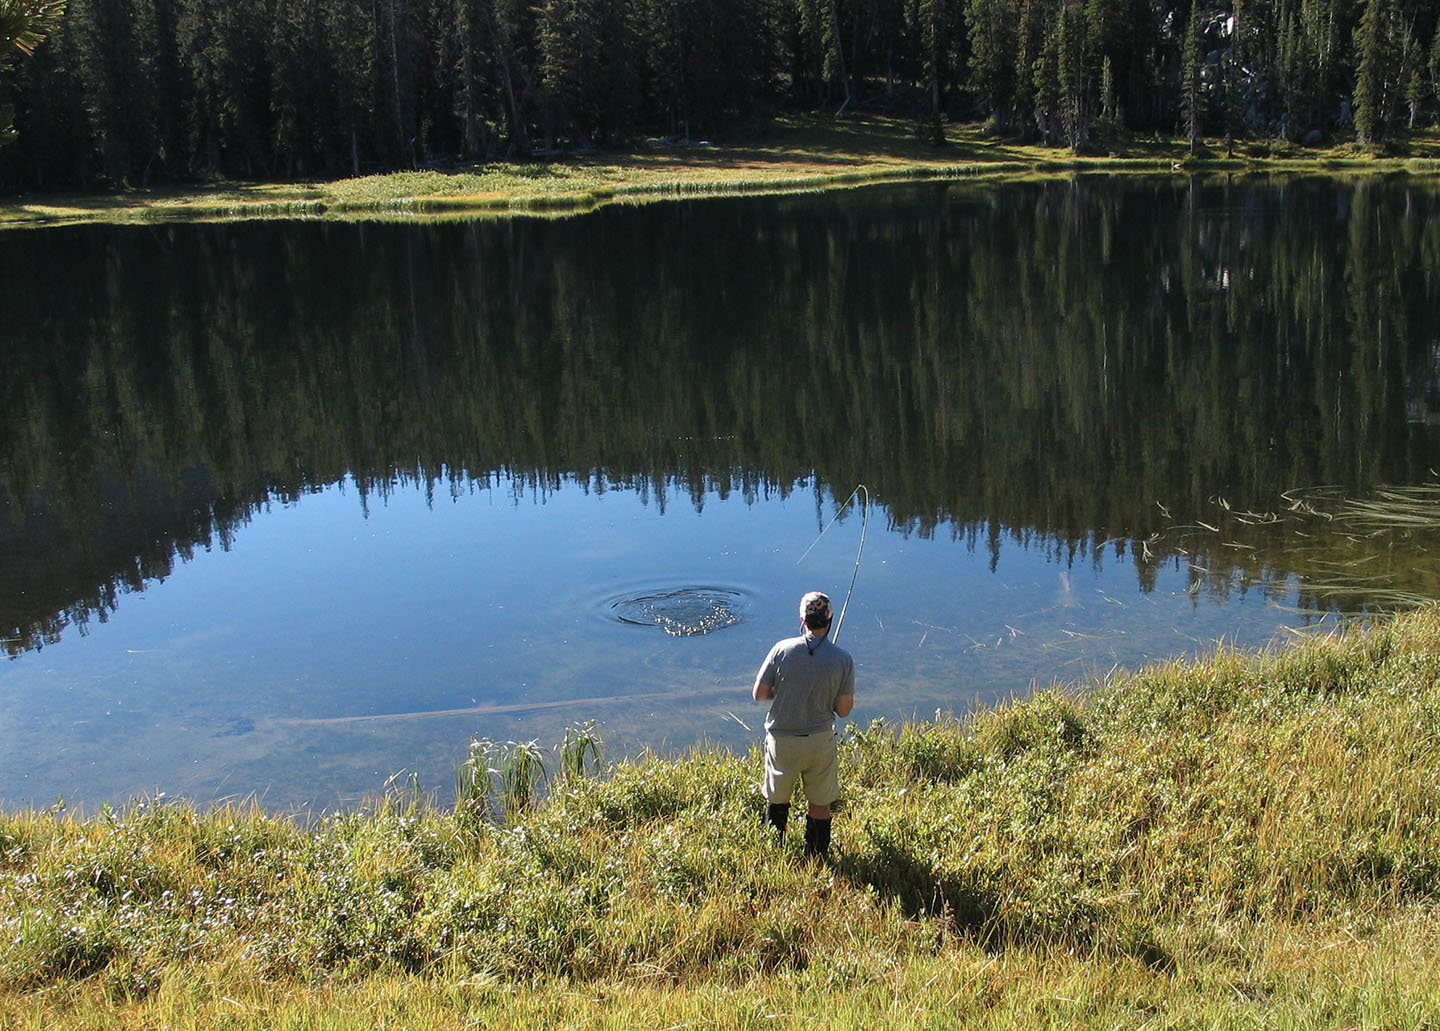 A quiet moment for conservation advocate Oppenheimer at the Casino Lakes in Idaho's Sawtooth National Recreation Area. JOHN MCCARTHY